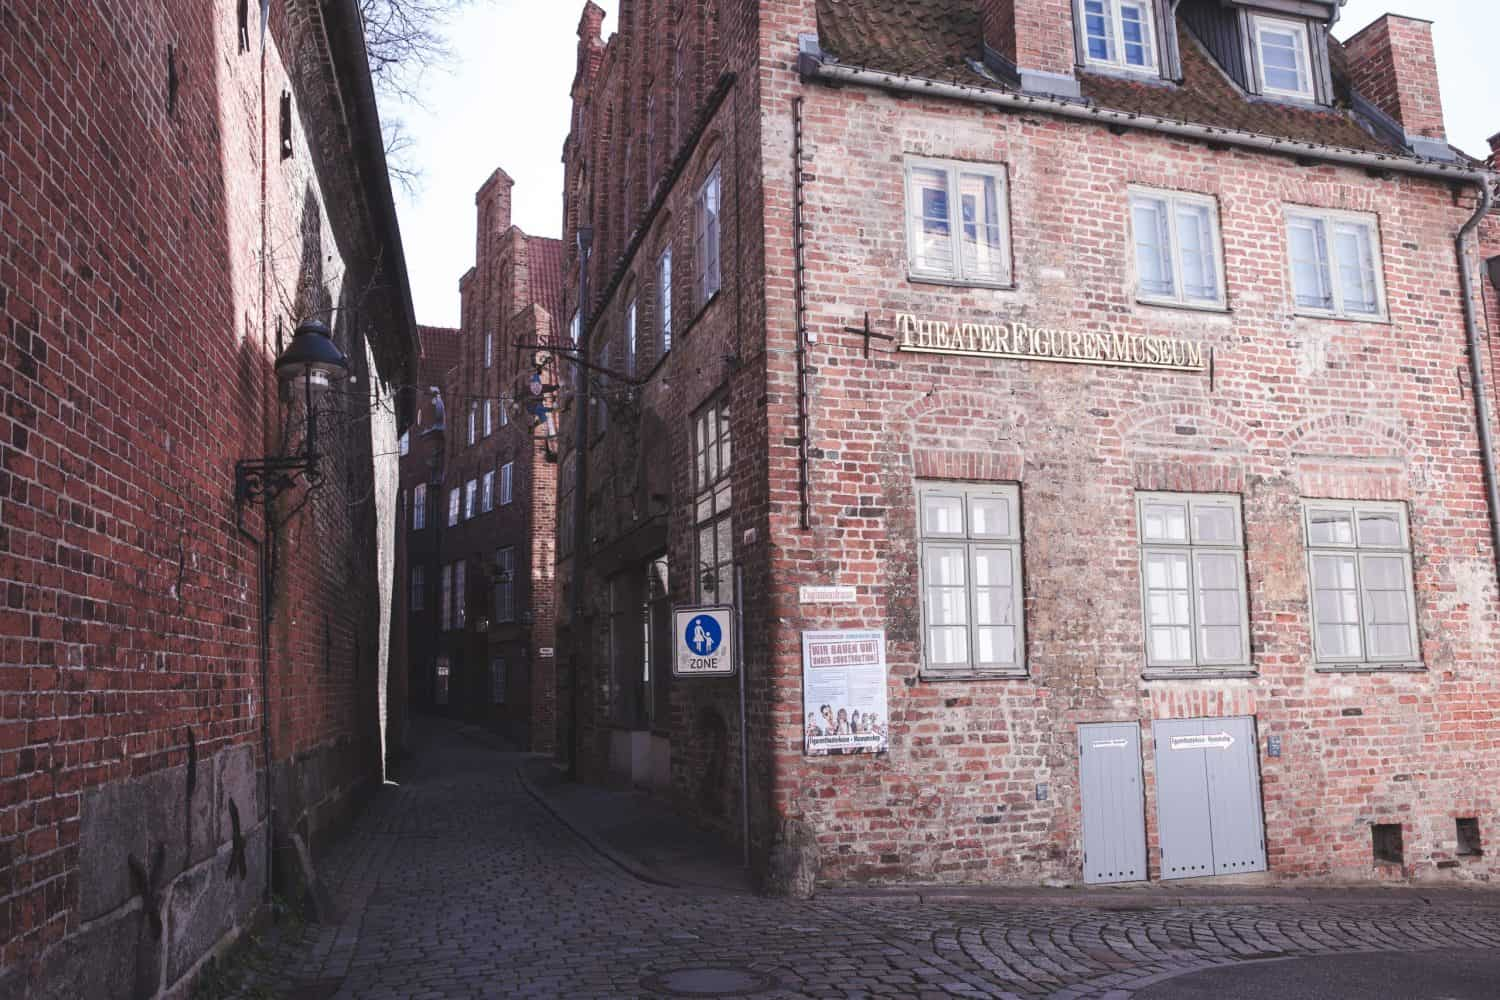 Theater Museum in Lübeck, Germany on a pretty cobblestone street surrounded by red brick buildings.